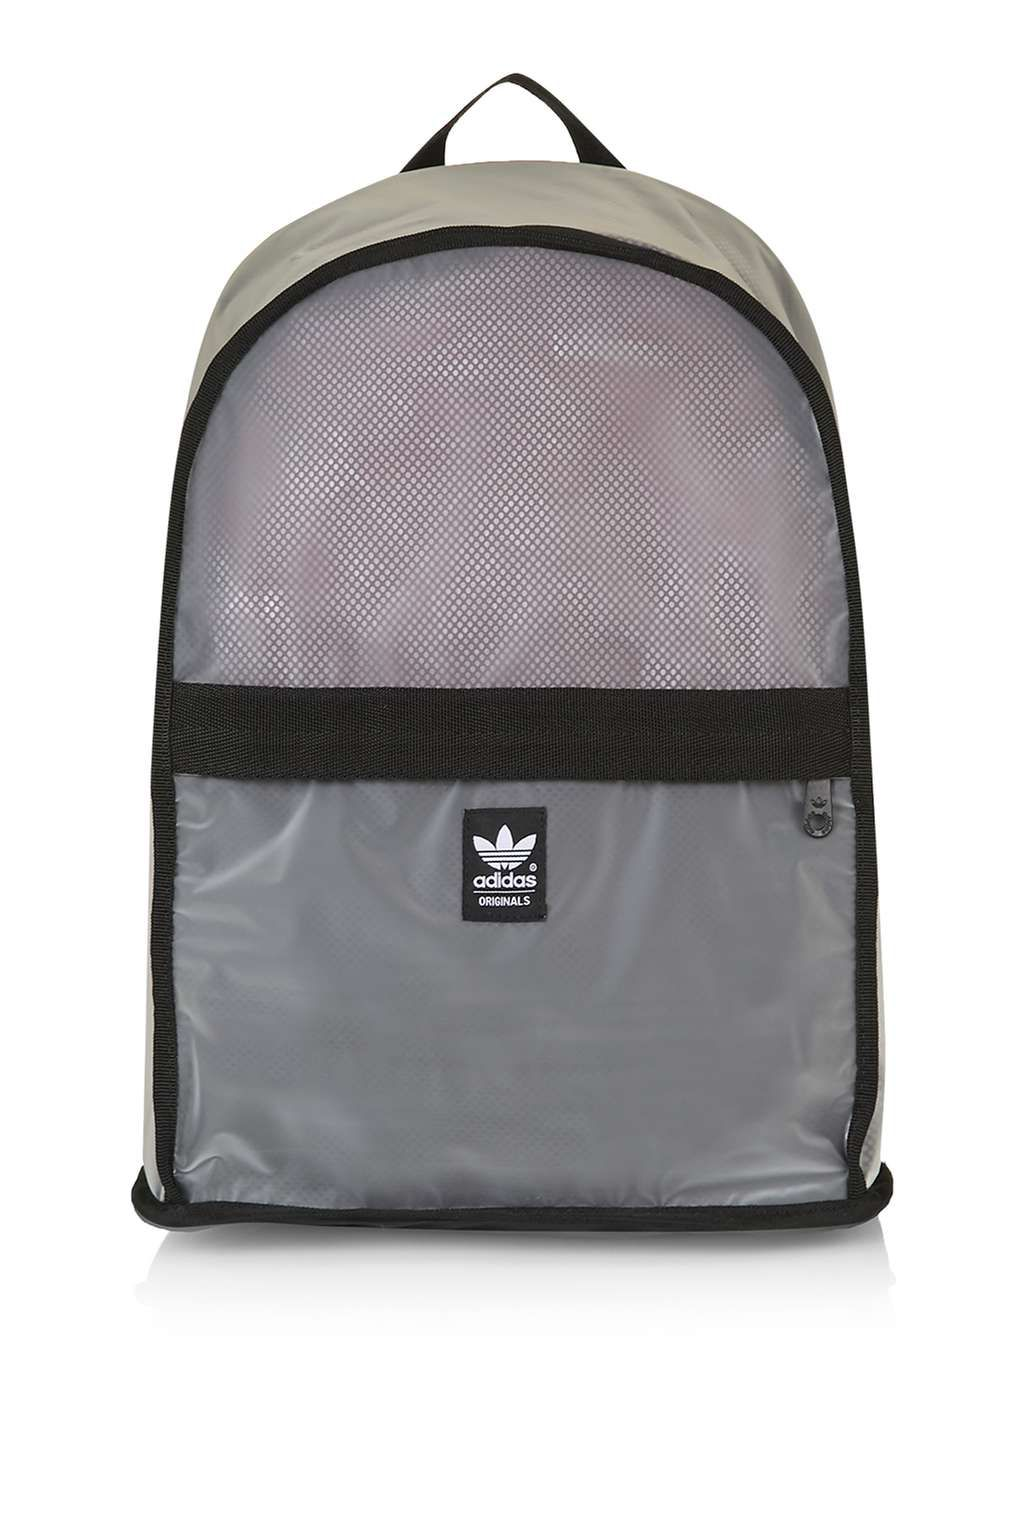 496a30128d Basketball Backpack by Adidas Originals | Dope Accessories ...